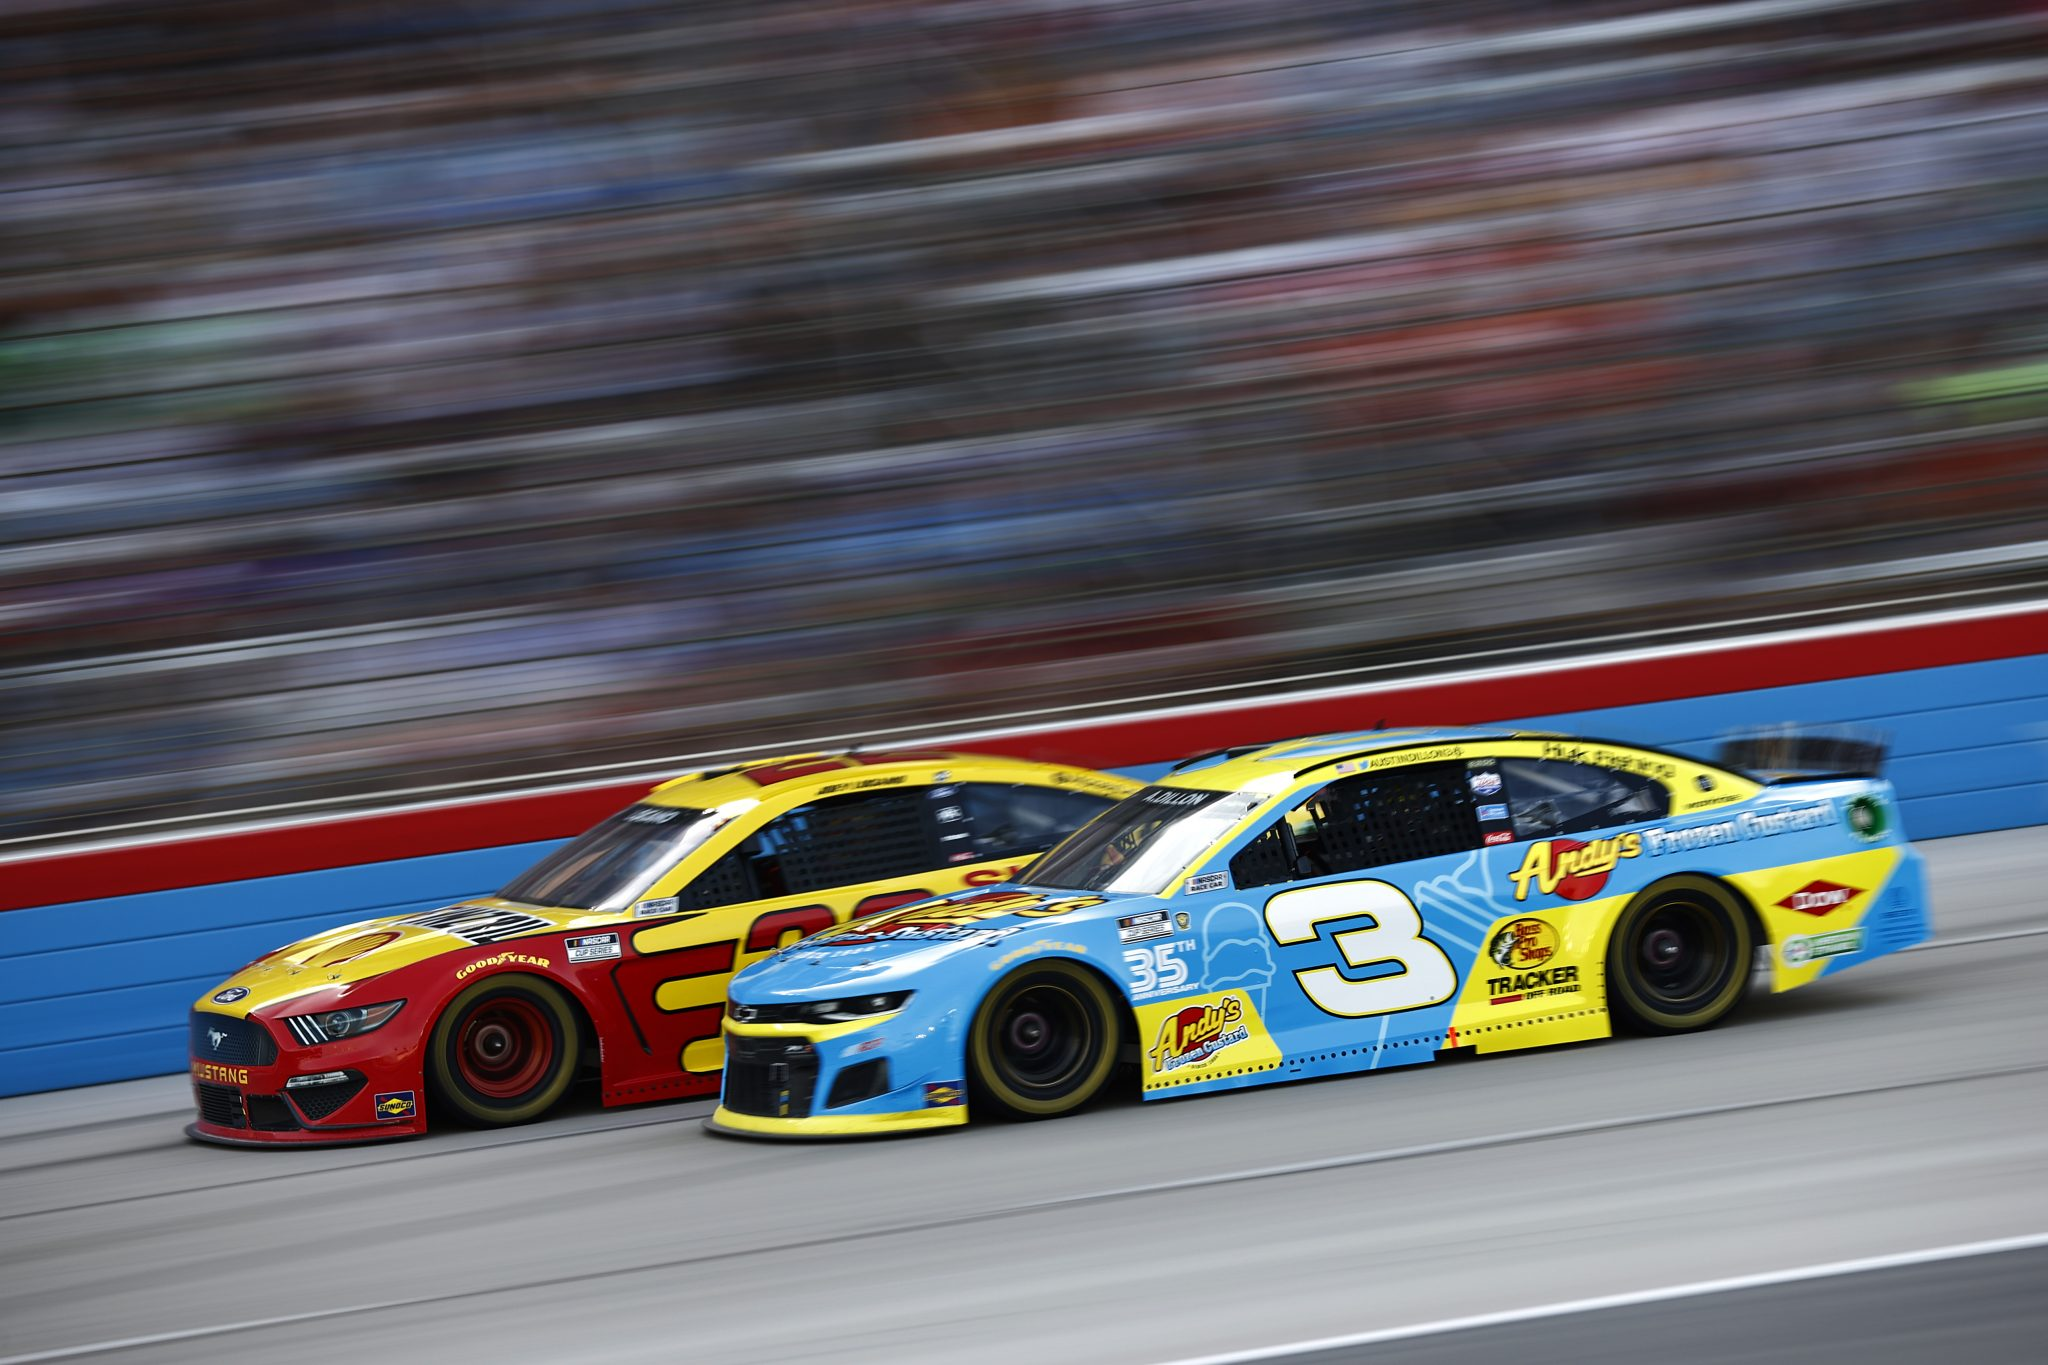 FORT WORTH, TEXAS - JUNE 13: Austin Dillon, driver of the #3 Andy's Frozen Custard Chevrolet, Joey Logano, driver of the #22 Shell Pennzoil Ford, race during the NASCAR All-Star Race at Texas Motor Speedway on June 13, 2021 in Fort Worth, Texas. (Photo by Jared C. Tilton/Getty Images)   Getty Images